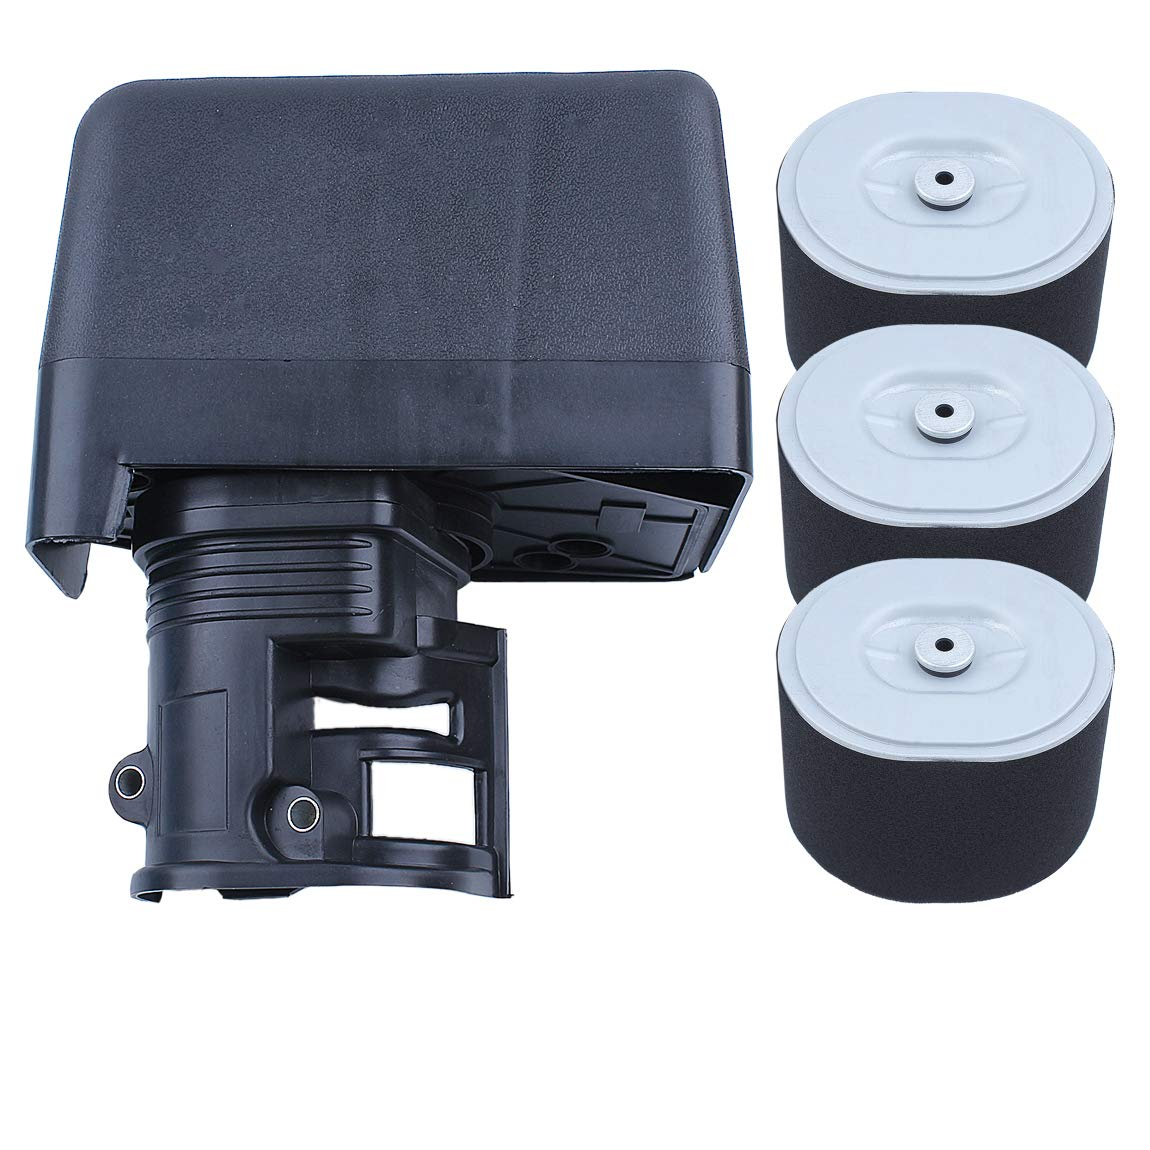 Haishine Air Filter Housing Cover Assembly w/ 3 Spare Filters Kit for Honda GX390 GX340 GX 390 340 Chinese 188F 190F Engine 5kw Generator